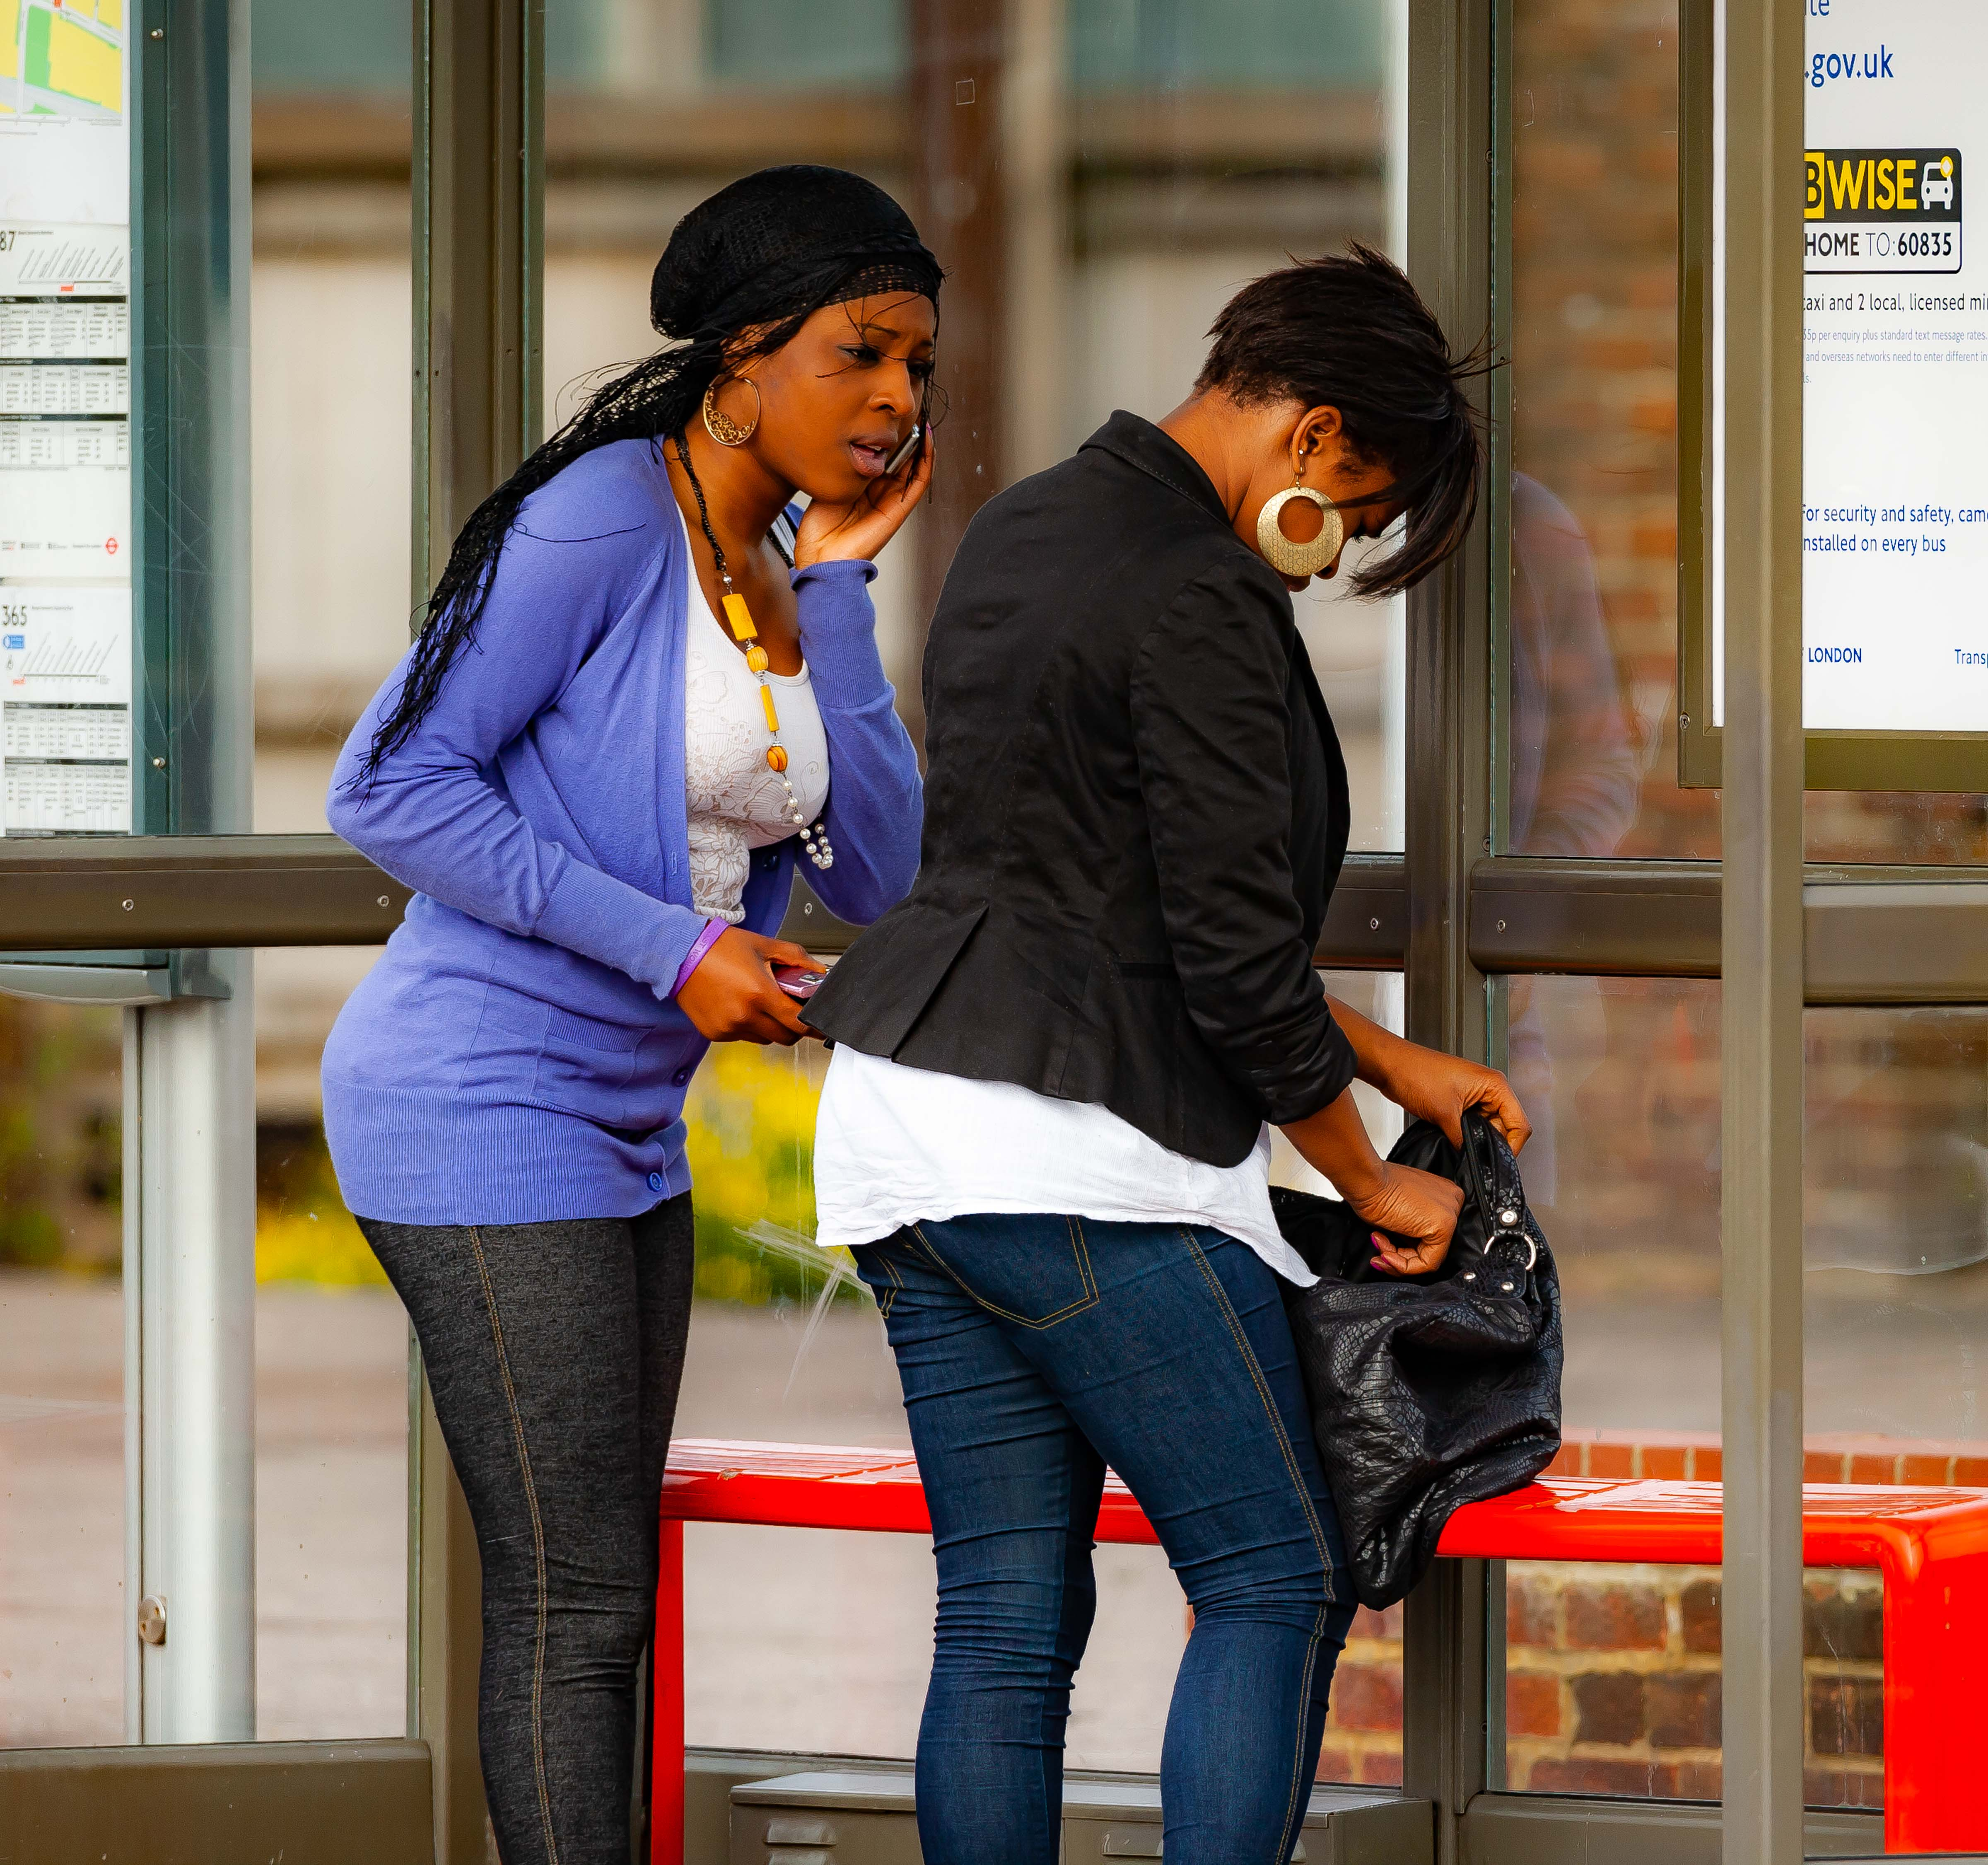 UK, Barking And Dagerham (London) Prov, Two Young Women At Bus Stop, 2009, IMG 3383